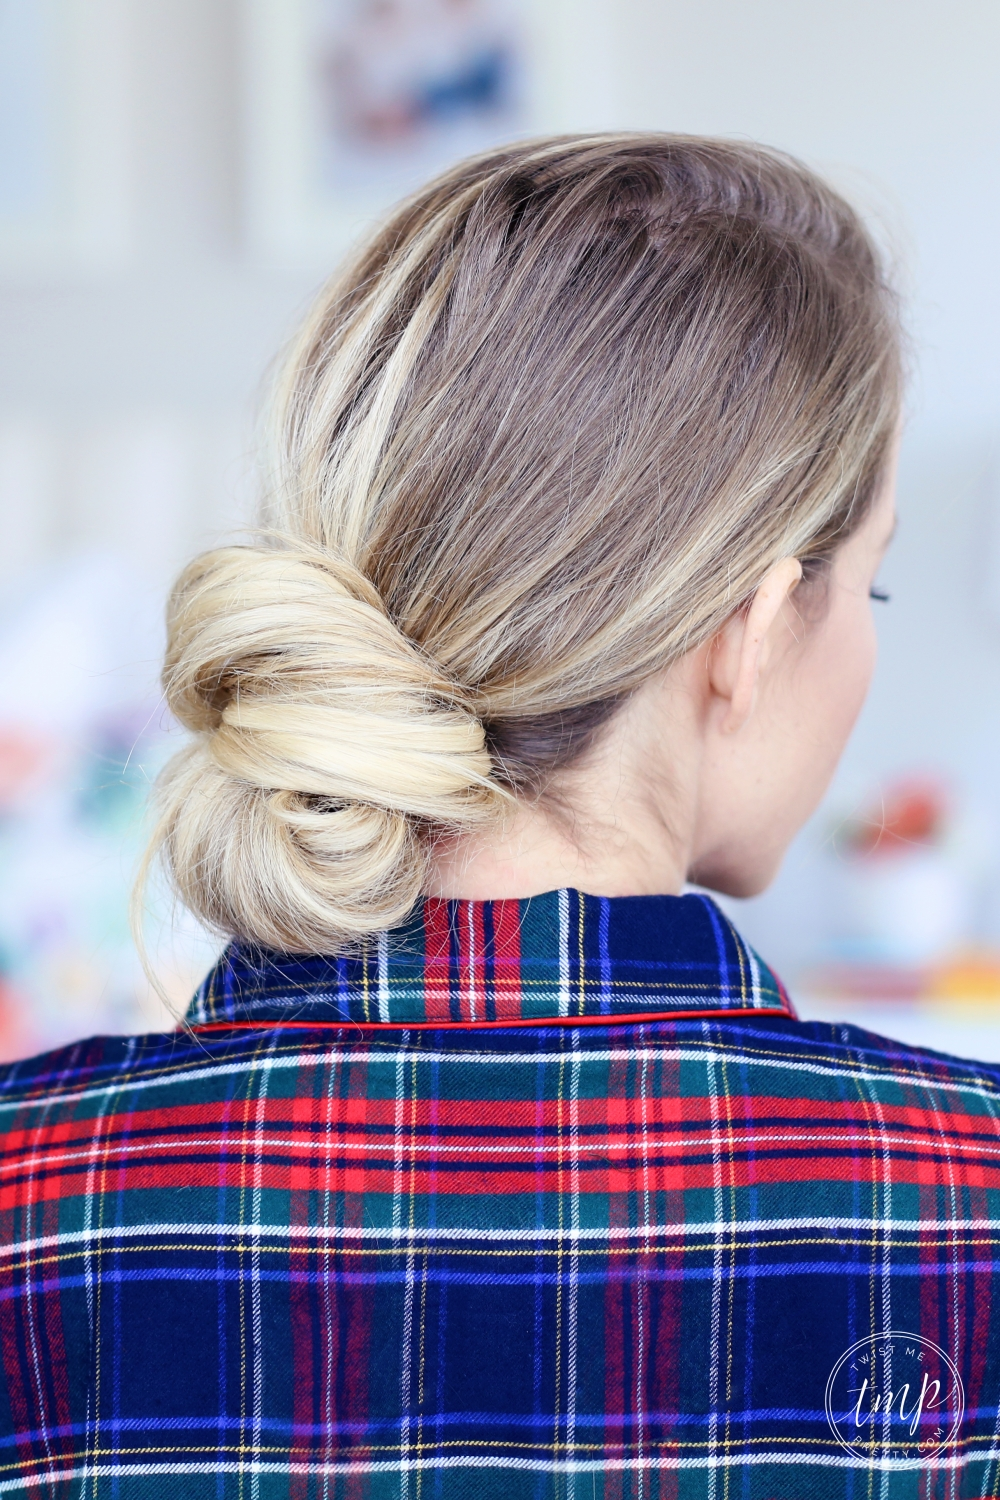 Twist Me Pretty's Abby sports a simple, classic low bun - a perfect hairstyle for Christmas morning.